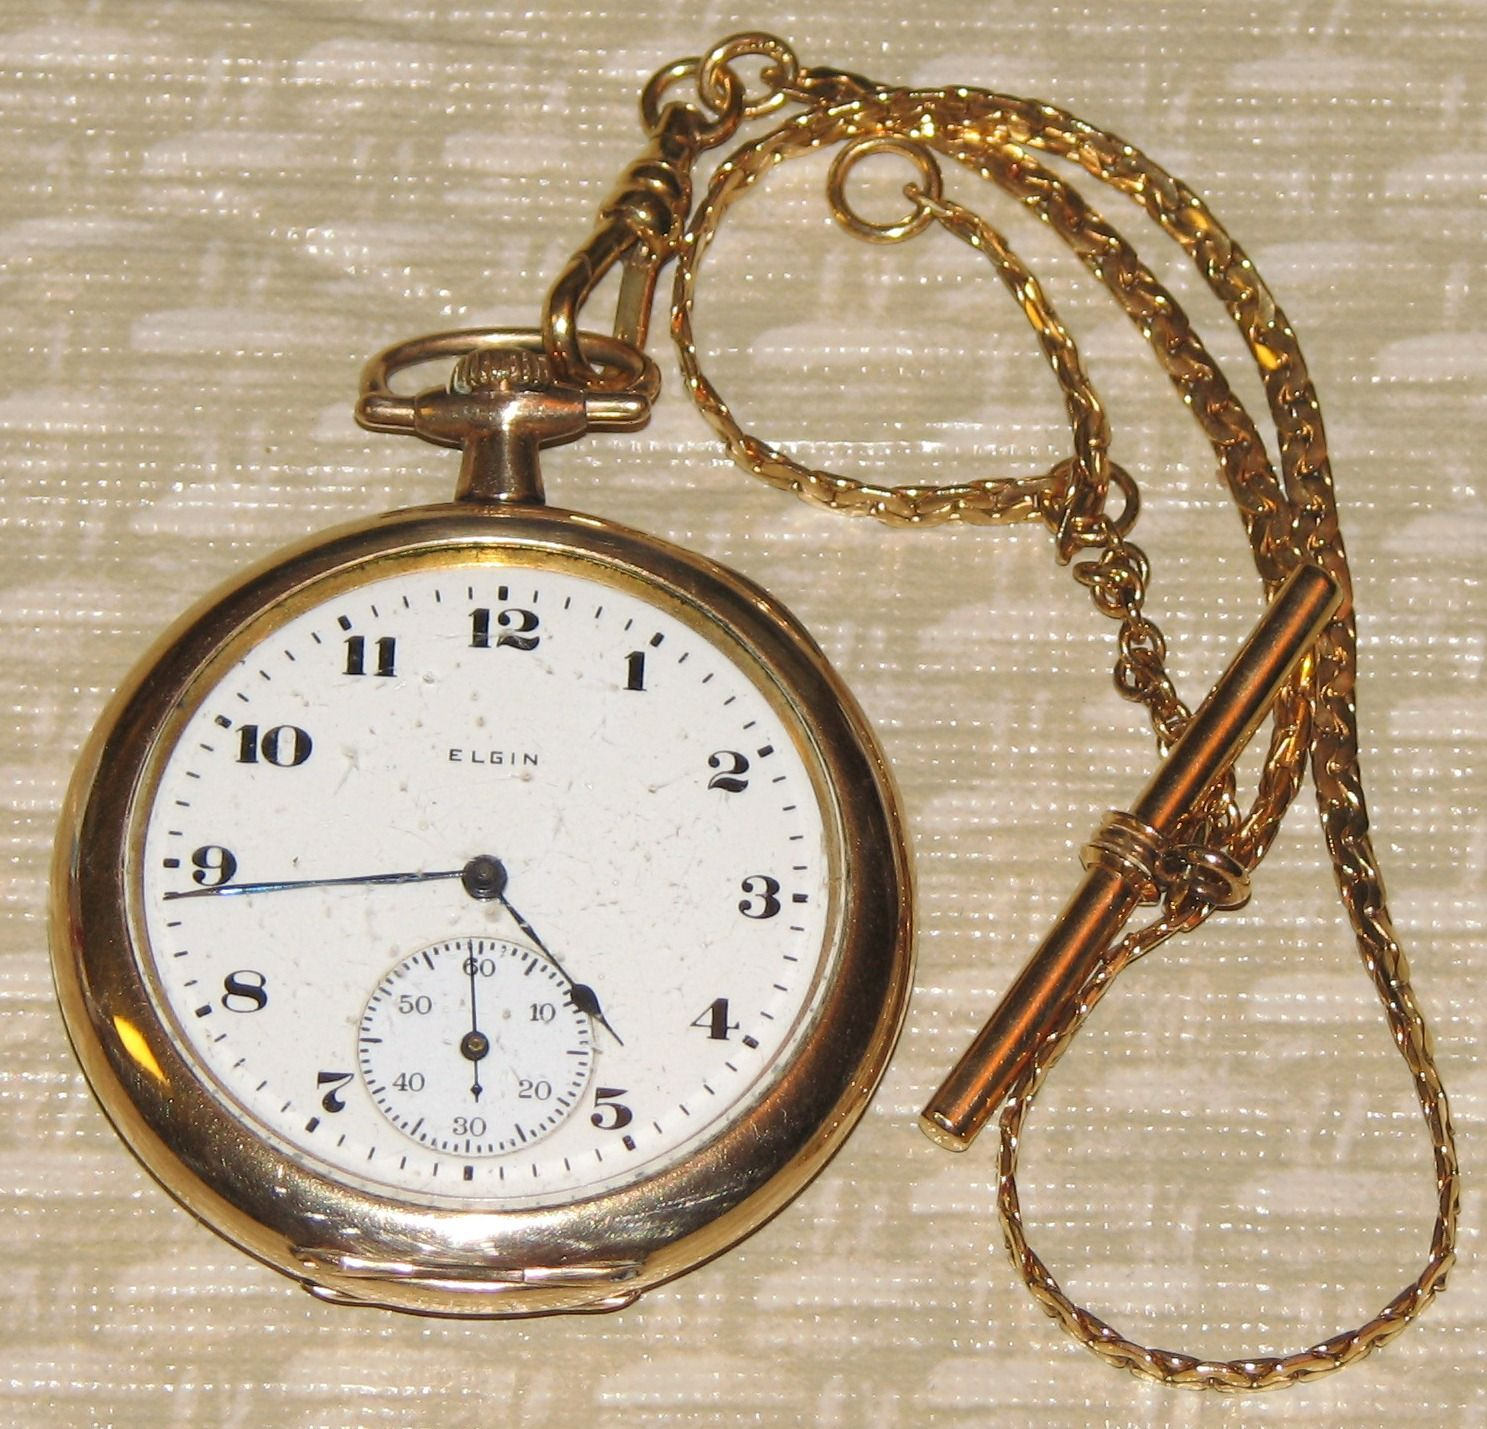 Vintage Elgin man's goldtone pocket watch with chain.  It keeps time very accurately.